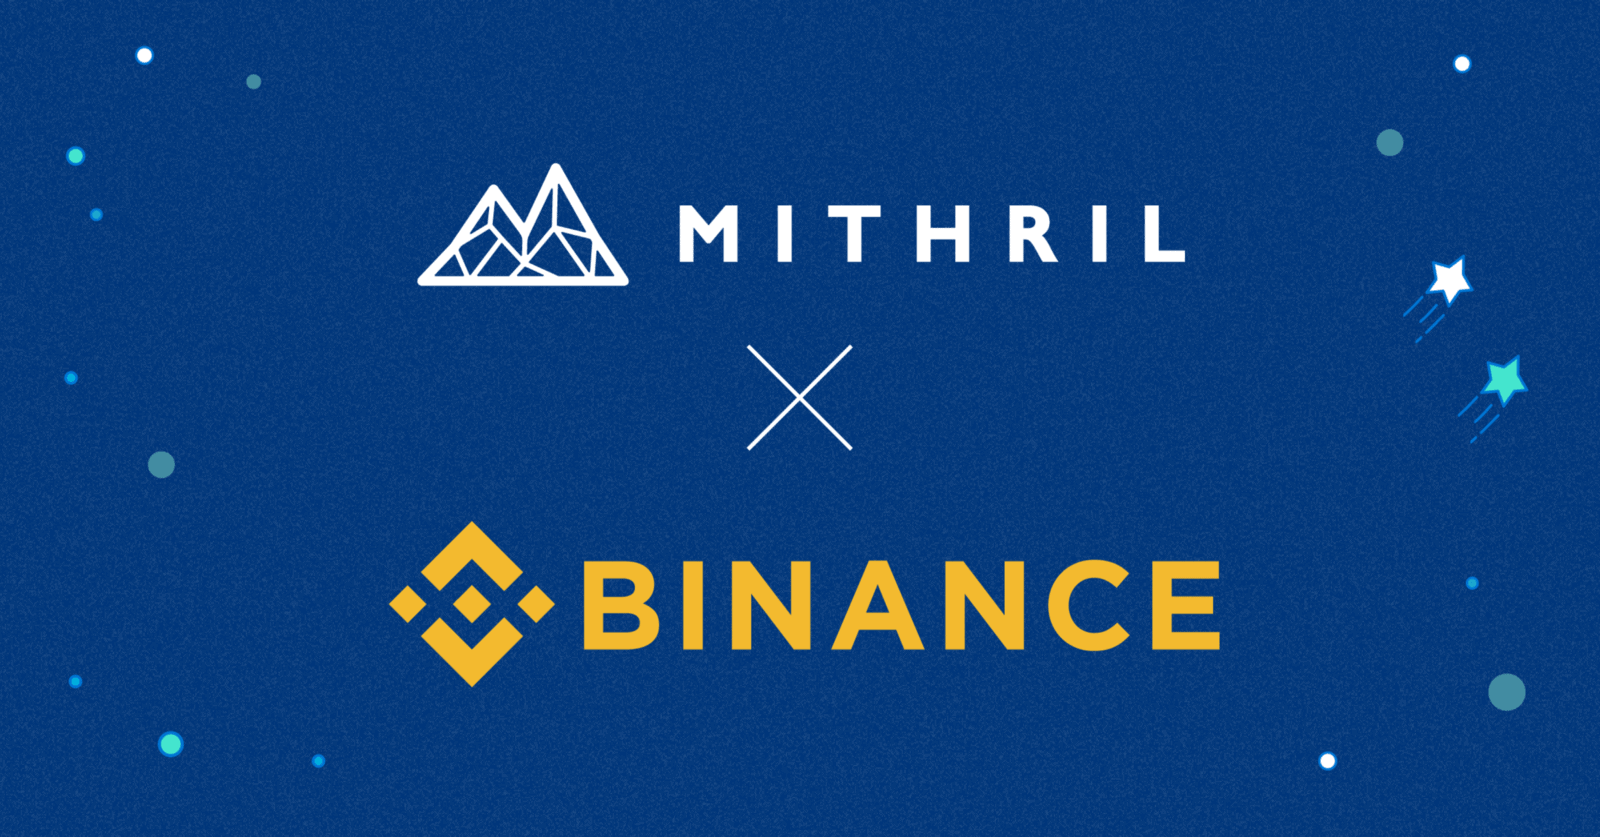 Binance's First Mainnet Launch Mithril to Have MITH/USDT Trading Pair